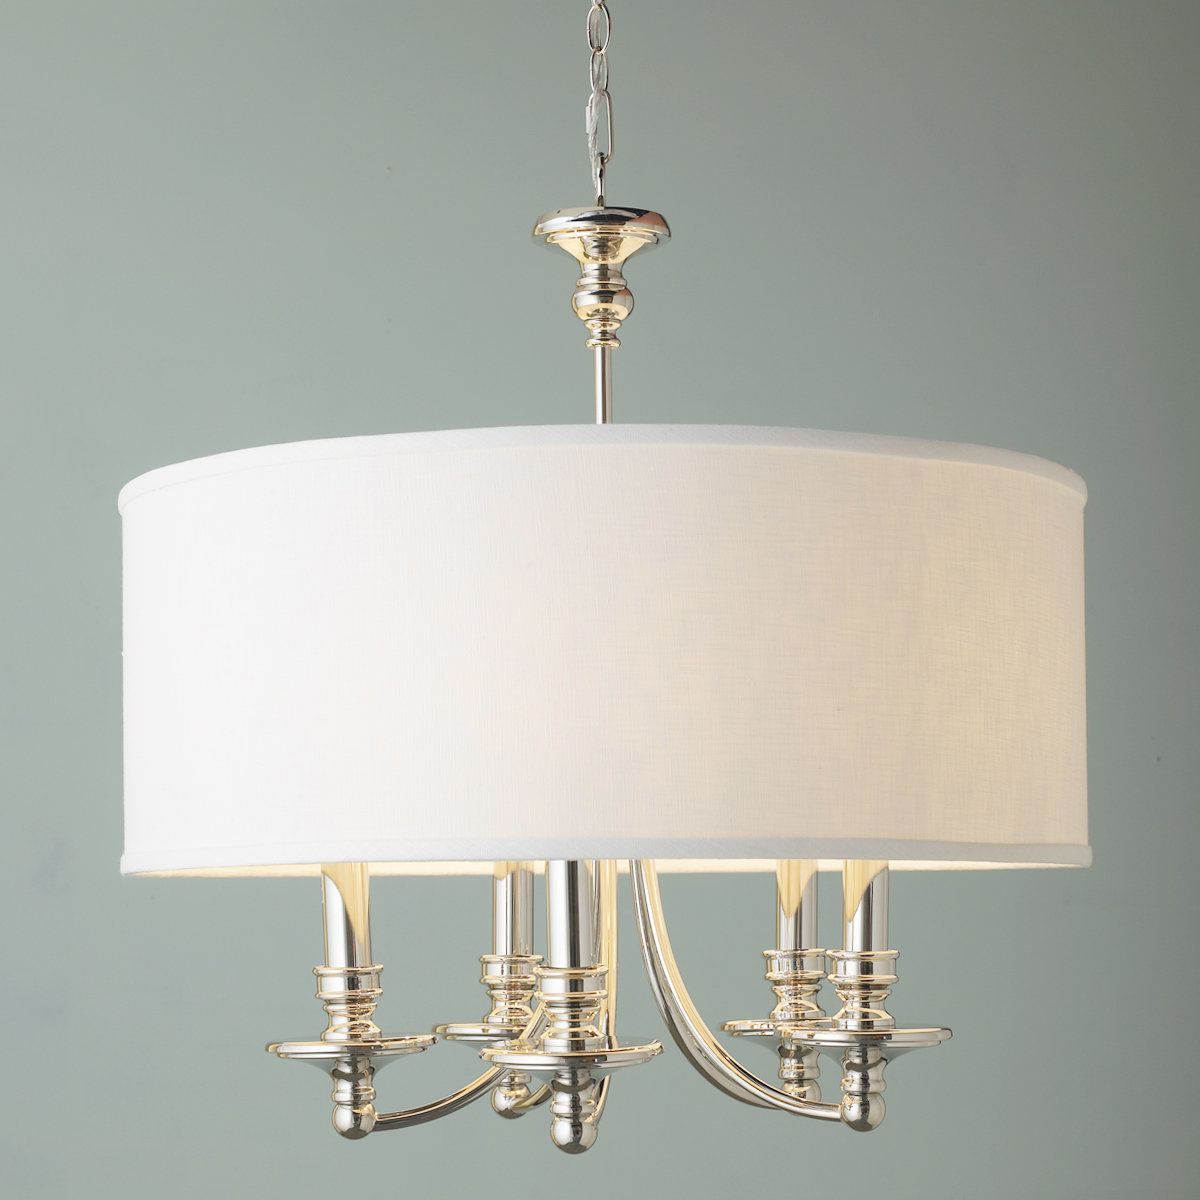 Springfield Linen Shade Chandelier 5 Light White And Polished Nickel Drum Shade Chandelier Chandelier Shades Dining Light Fixtures Drum shade light fixture